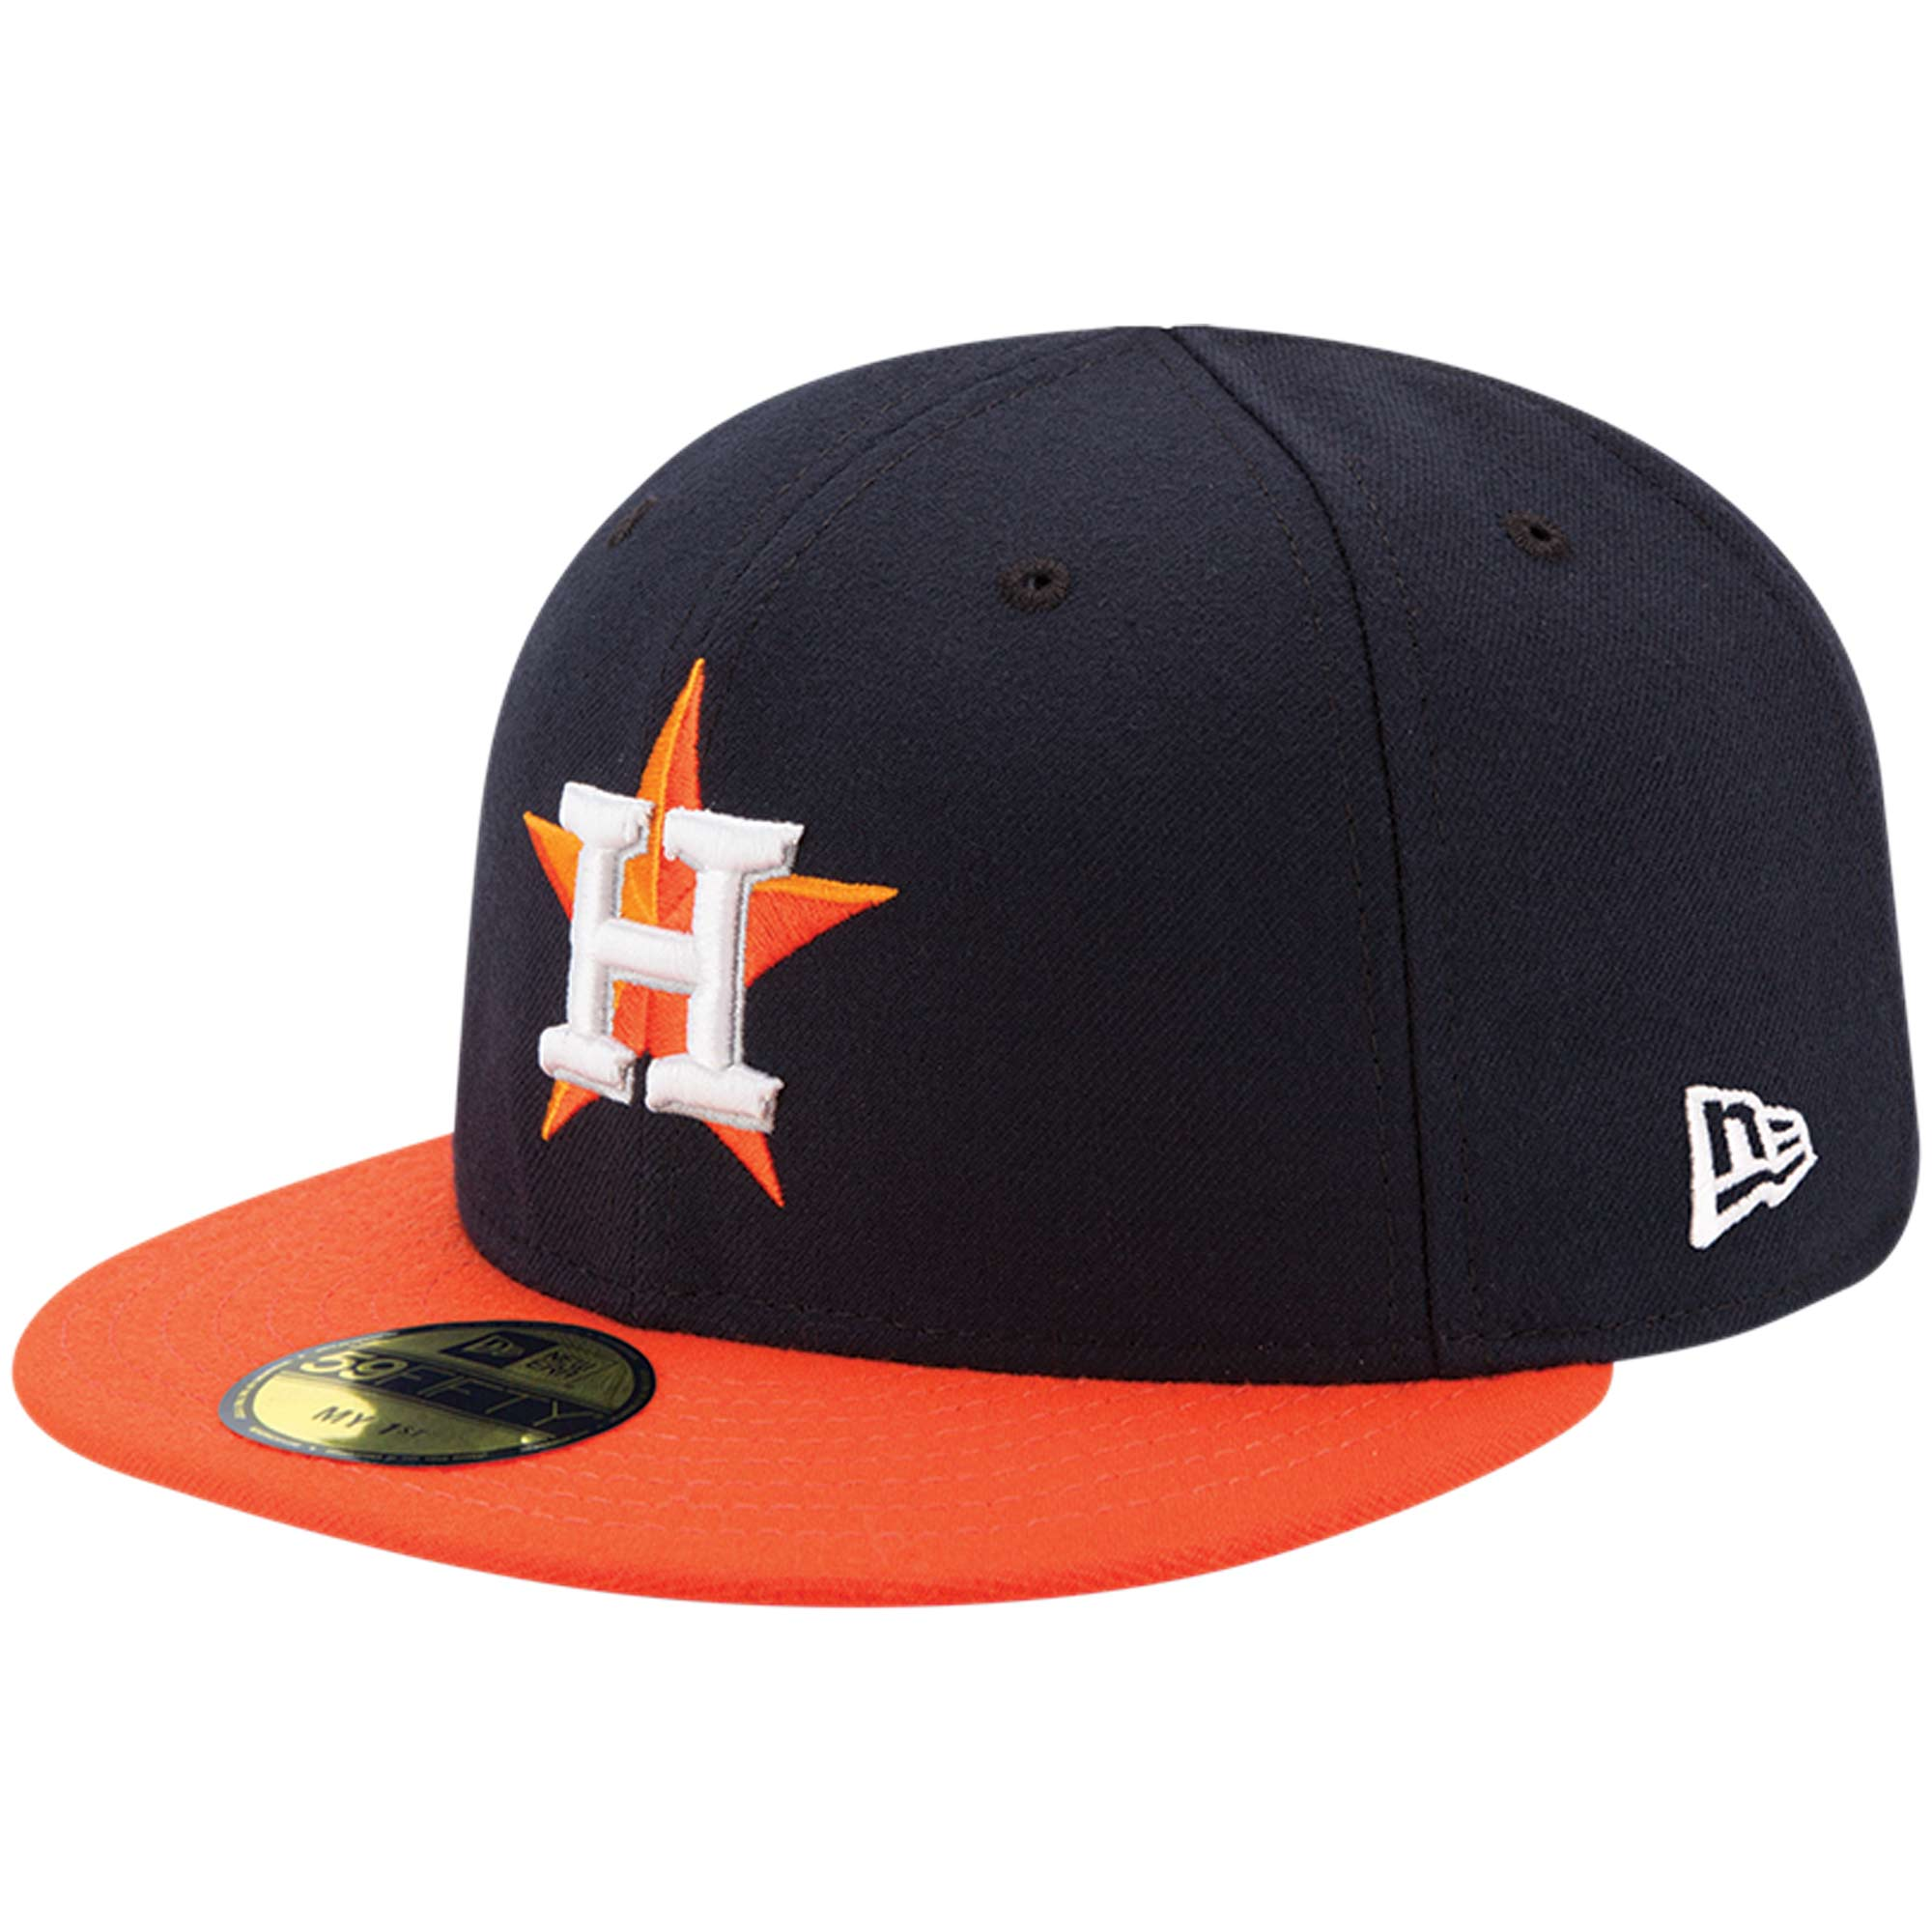 Houston Astros New Era Infant Authentic Collection On-Field My First 59FIFTY Fitted Hat - Navy - 6